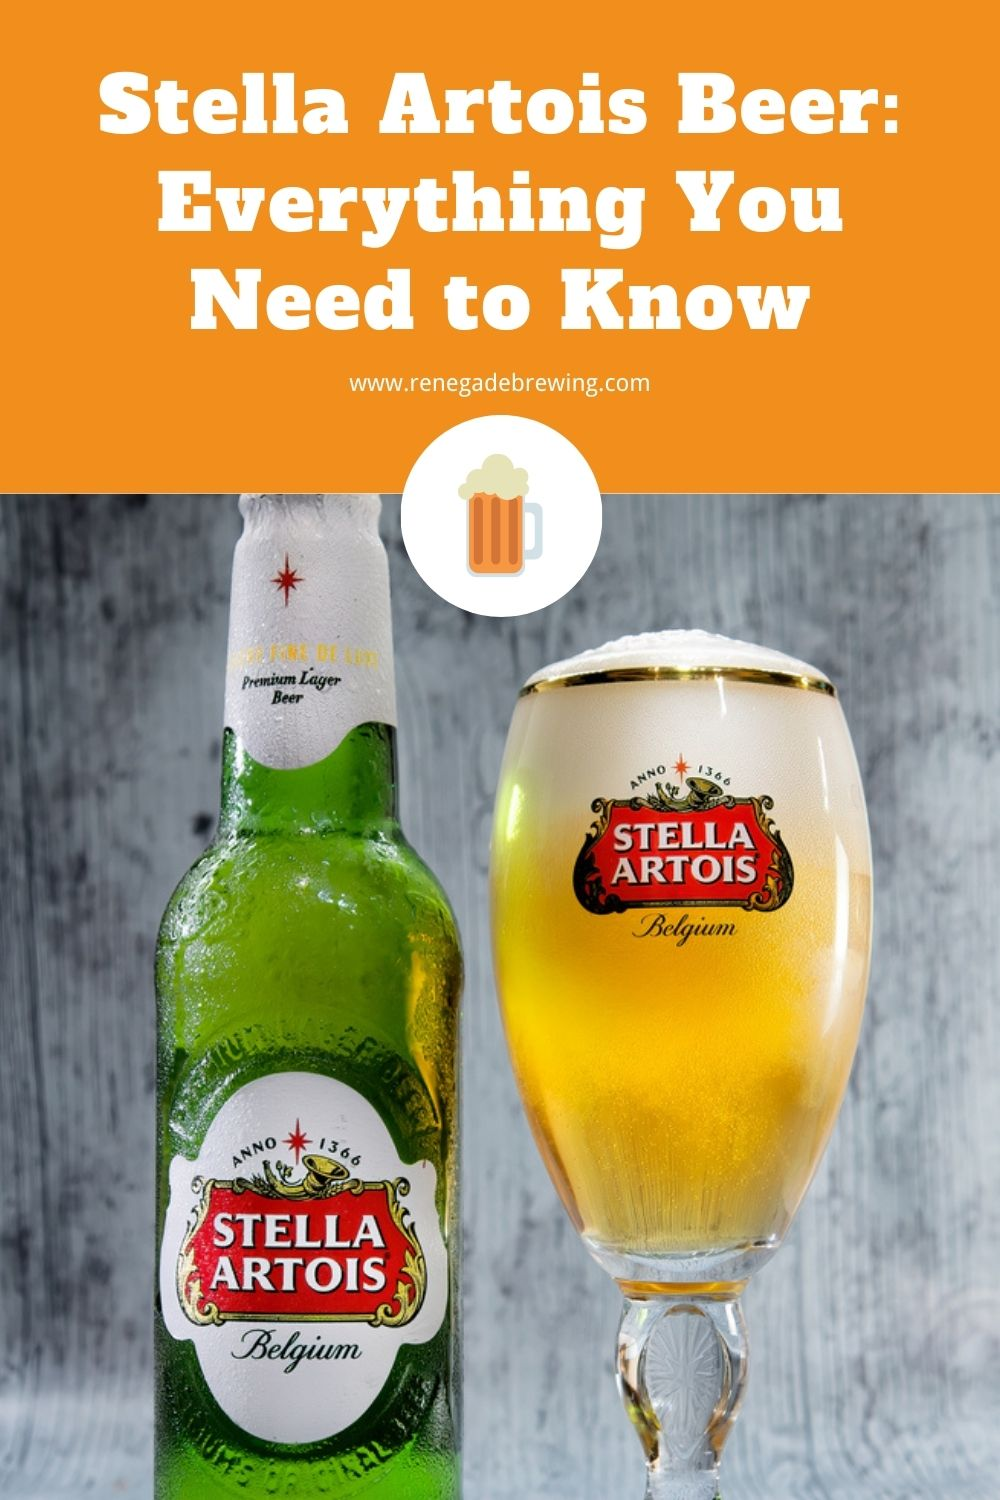 Stella Artois Beer Everything You Need to Know 2